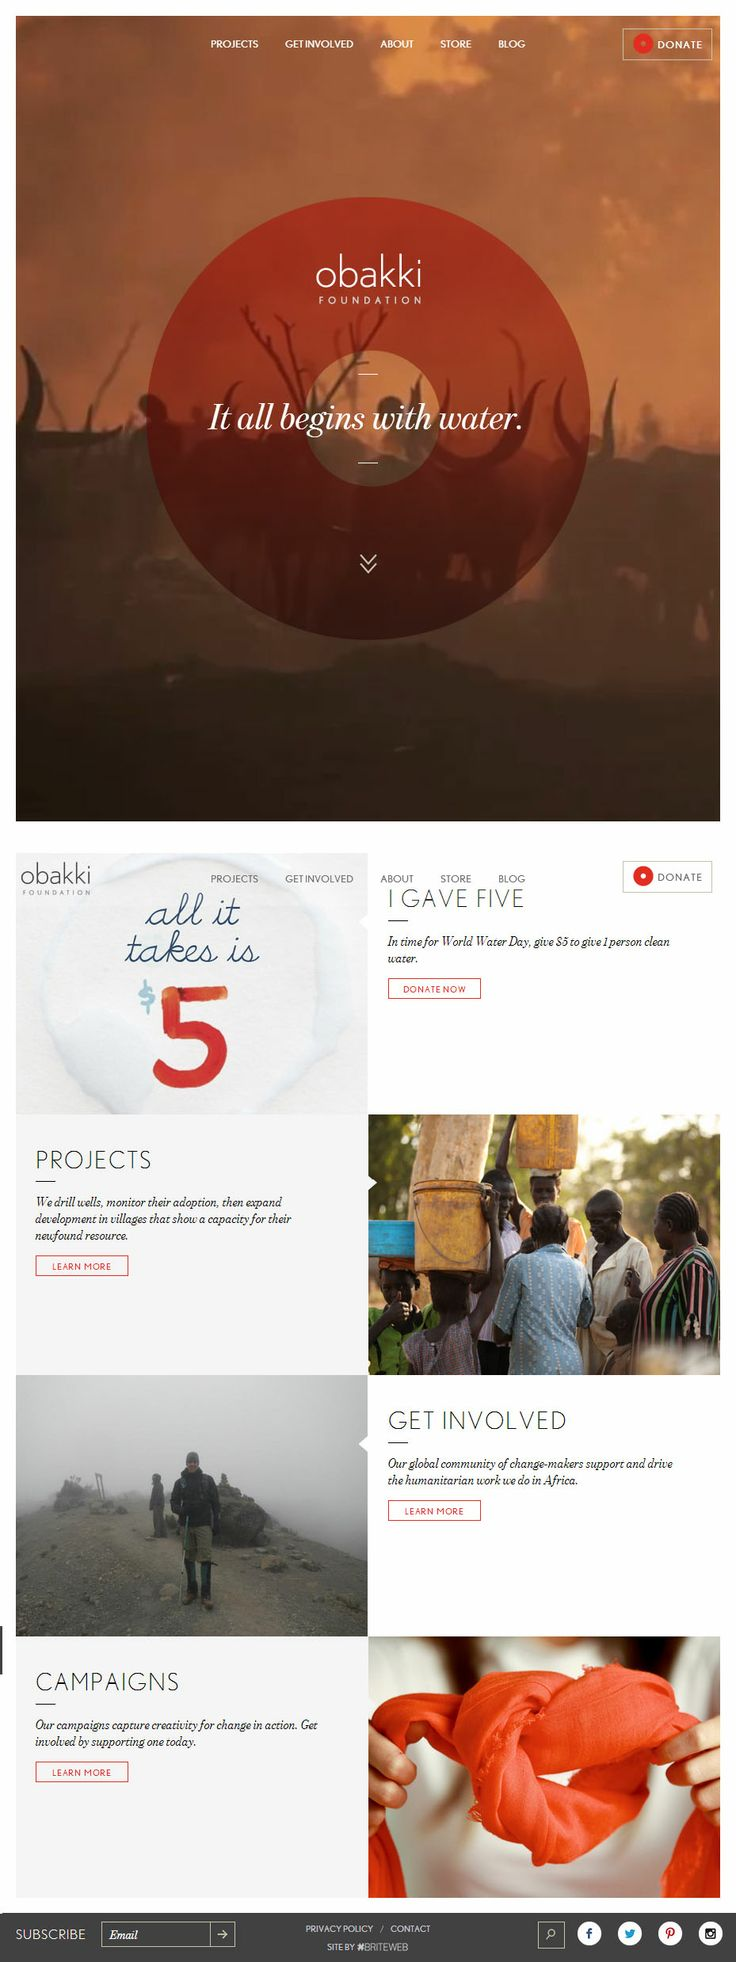 Obakki Foundation, March 22, 2014. http://www.awwwards.com/web-design-awards/obakki-foundation #UI #Scroll #WebDesign #Inspiration #Clean #HTML5